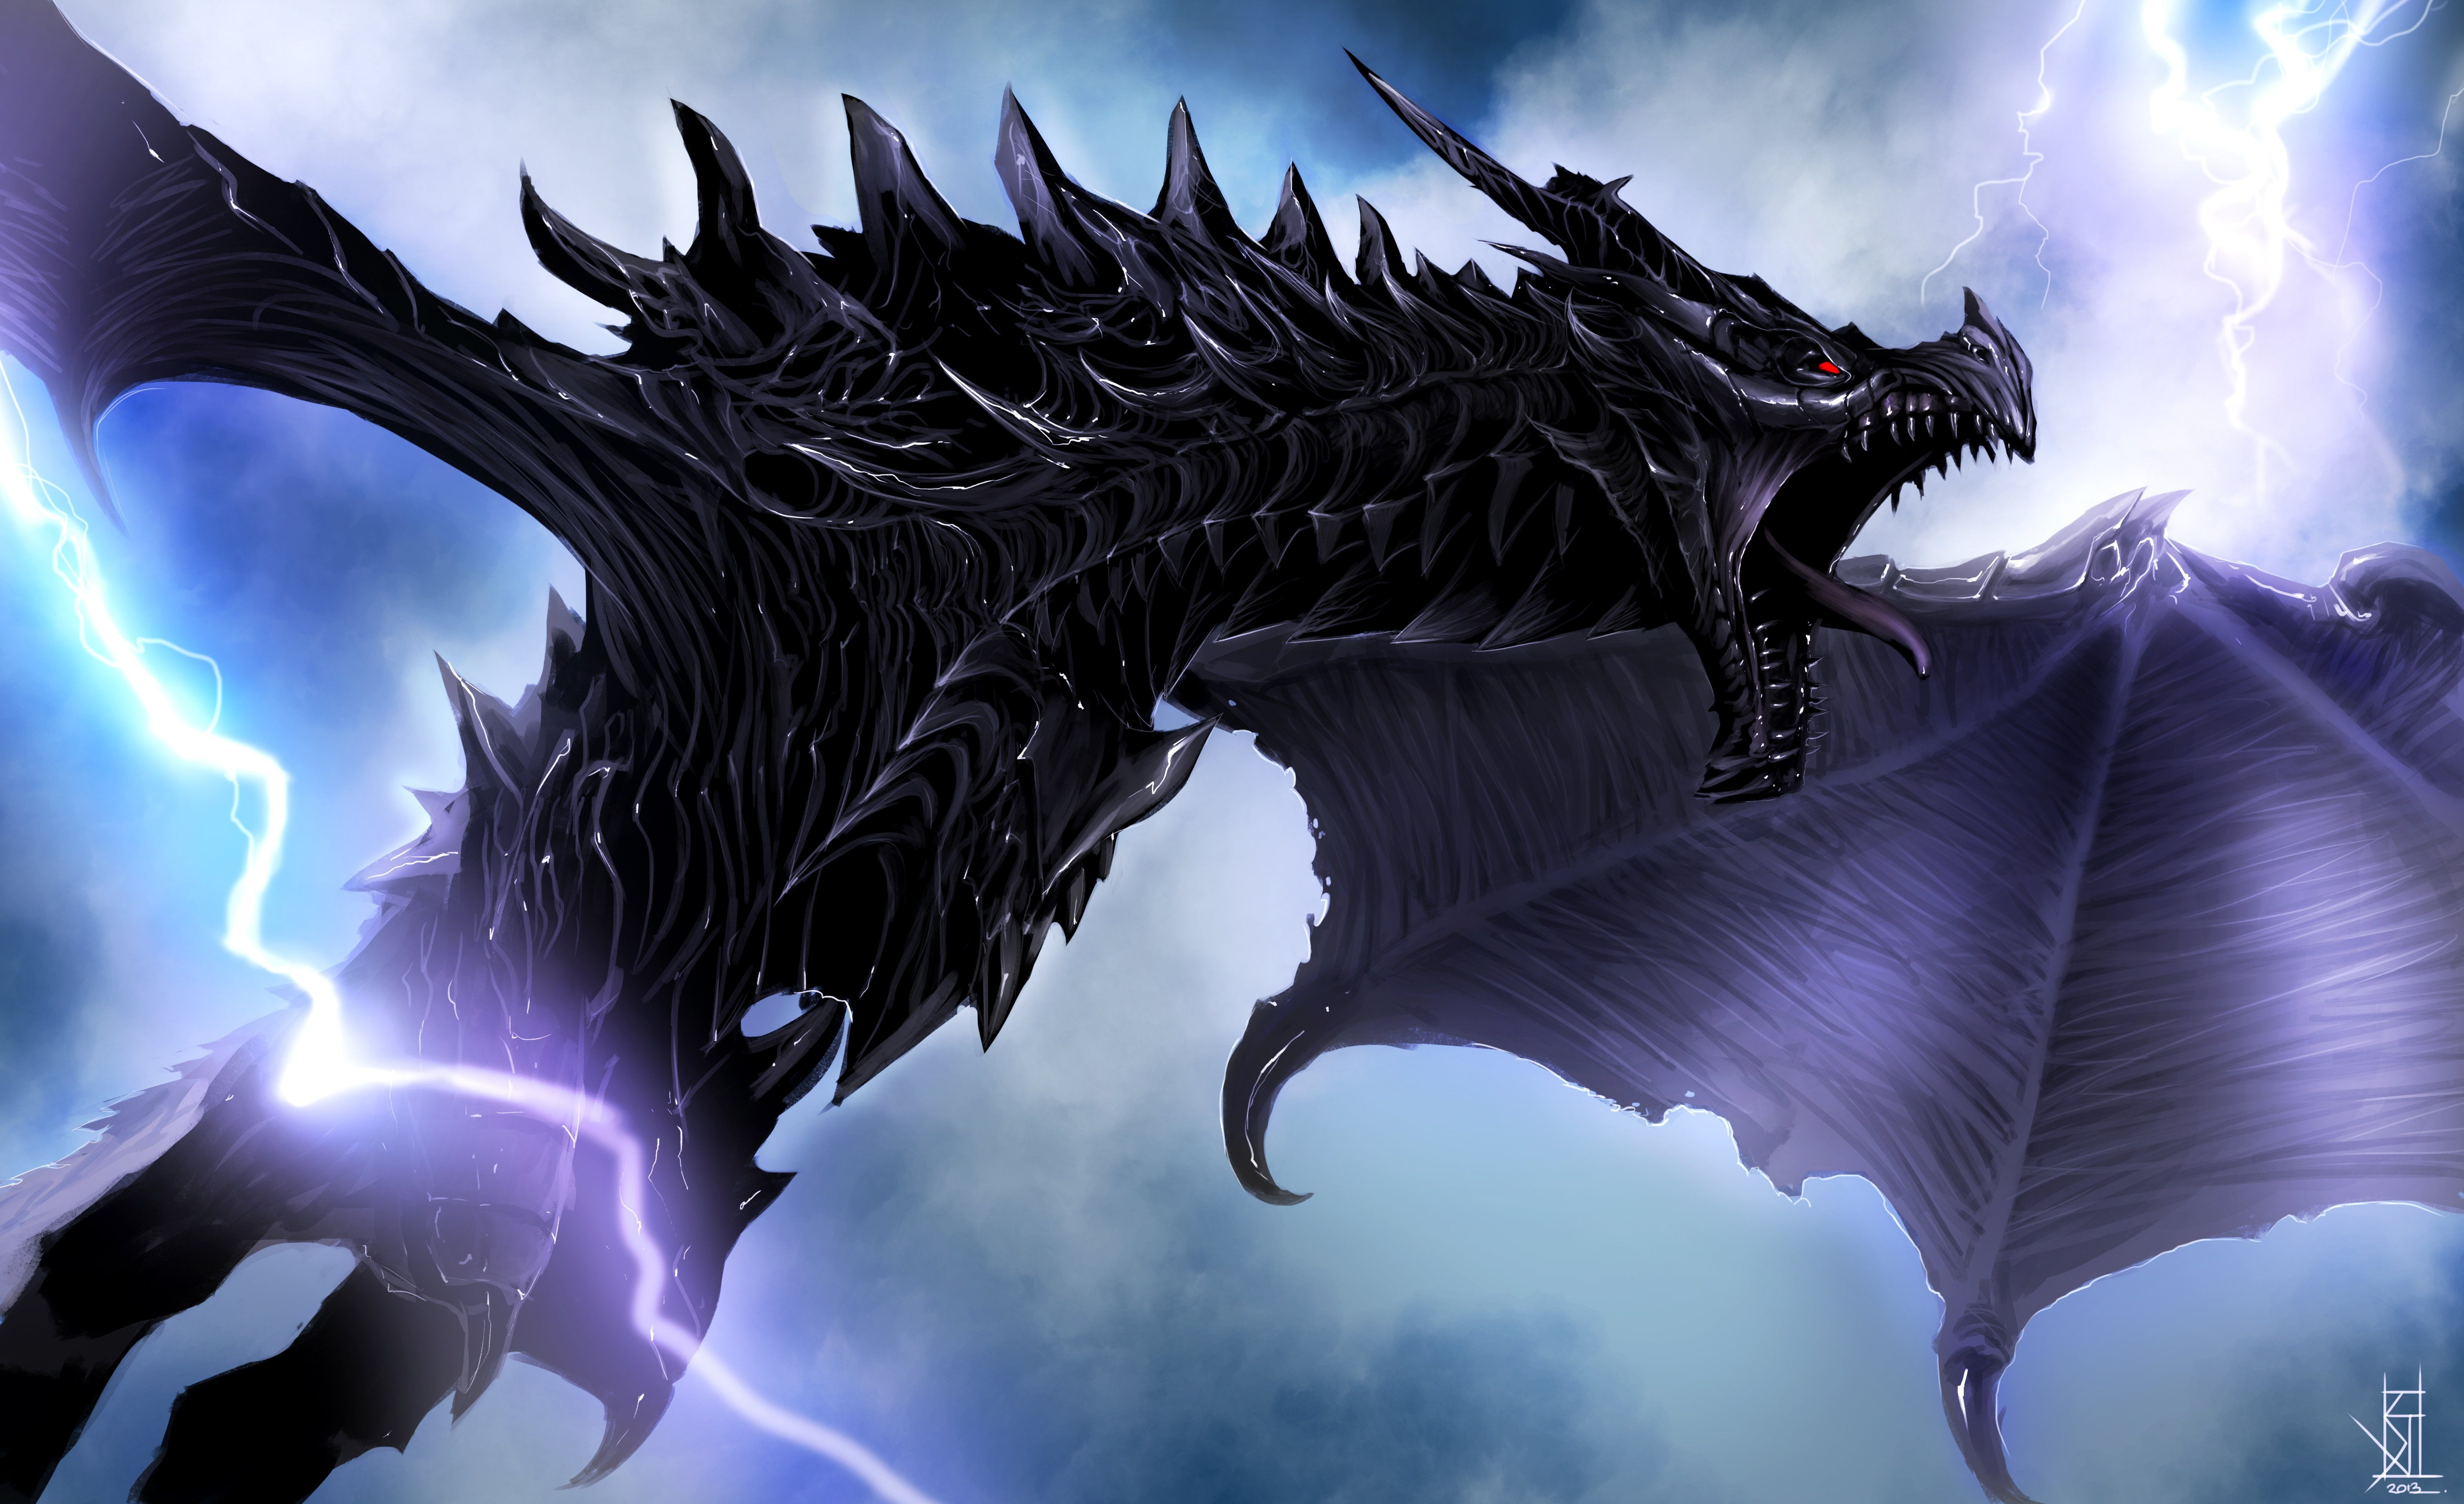 4k Skyrim Dragon Alduin 5k Wallpaper Hdwallpaper Desktop Skyrim Dragon Skyrim Wallpaper Lightning Dragon